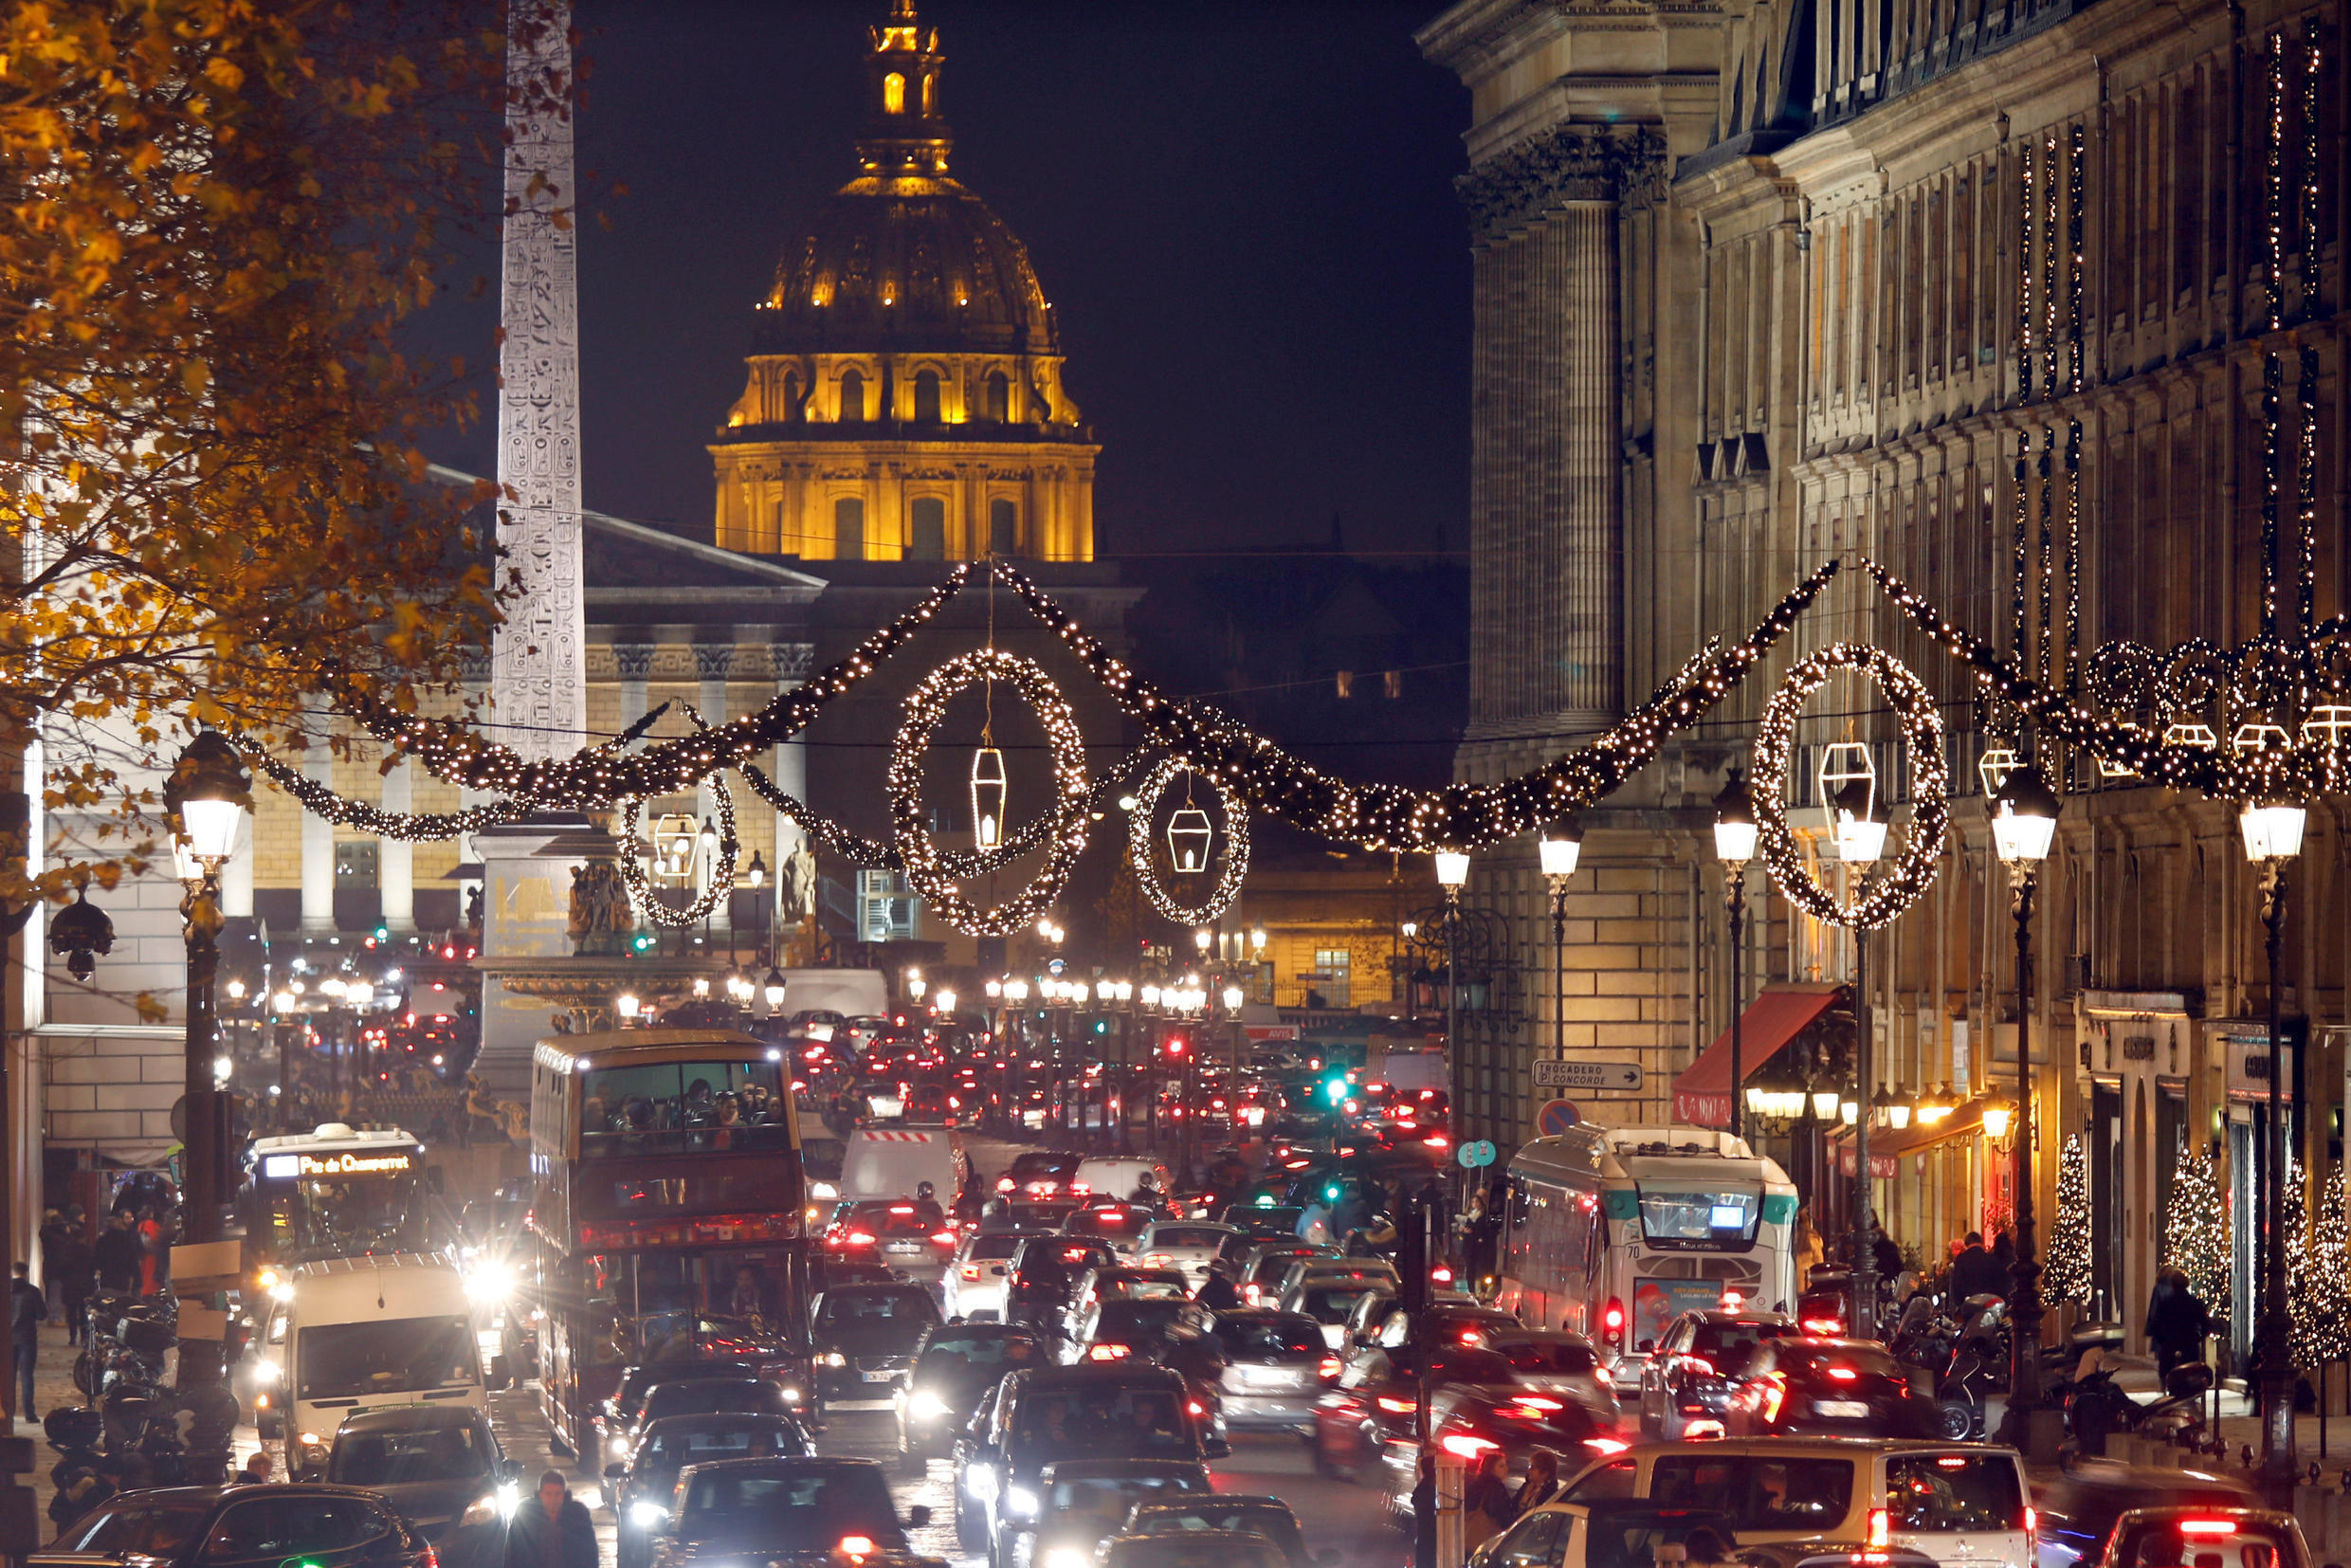 Christmas lights illuminate the rue Royale in front of the Place de la Concorde, the Luxor Obelisk, the National Assembly and the Dome des Invalides as part of illuminations for the Christmas season in Paris, France, December 5, 2017.